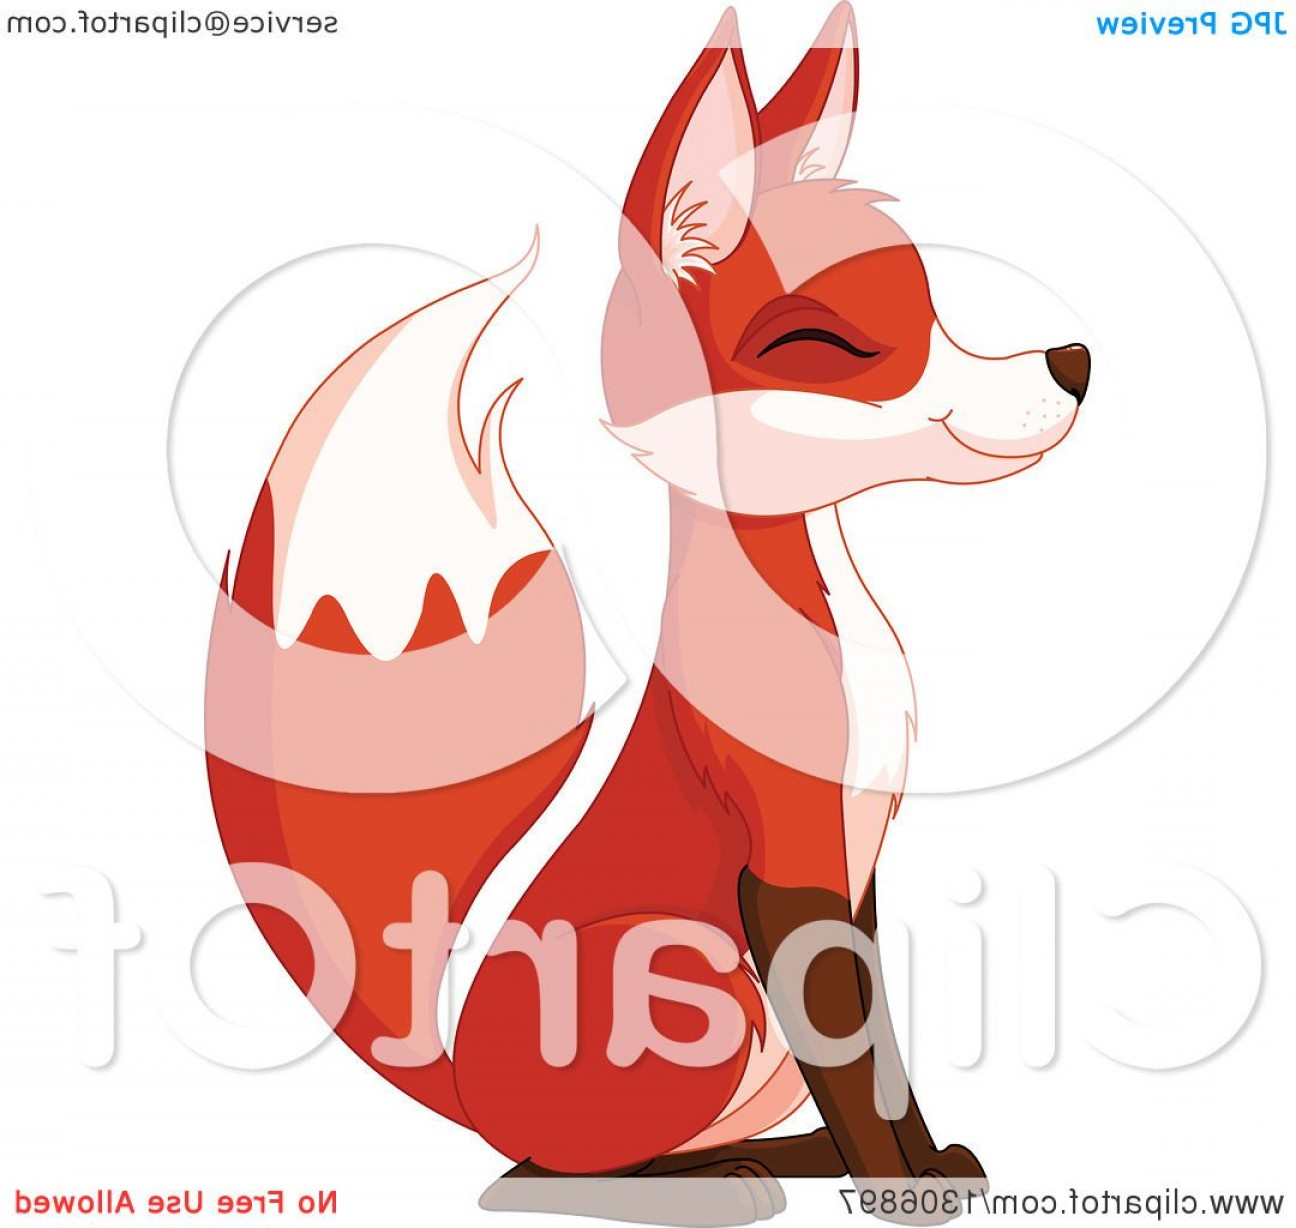 Sitting Fox Logo Vector: Cute Happy Sitting Fox Smiling With Its Eyes Closed And Facing Left